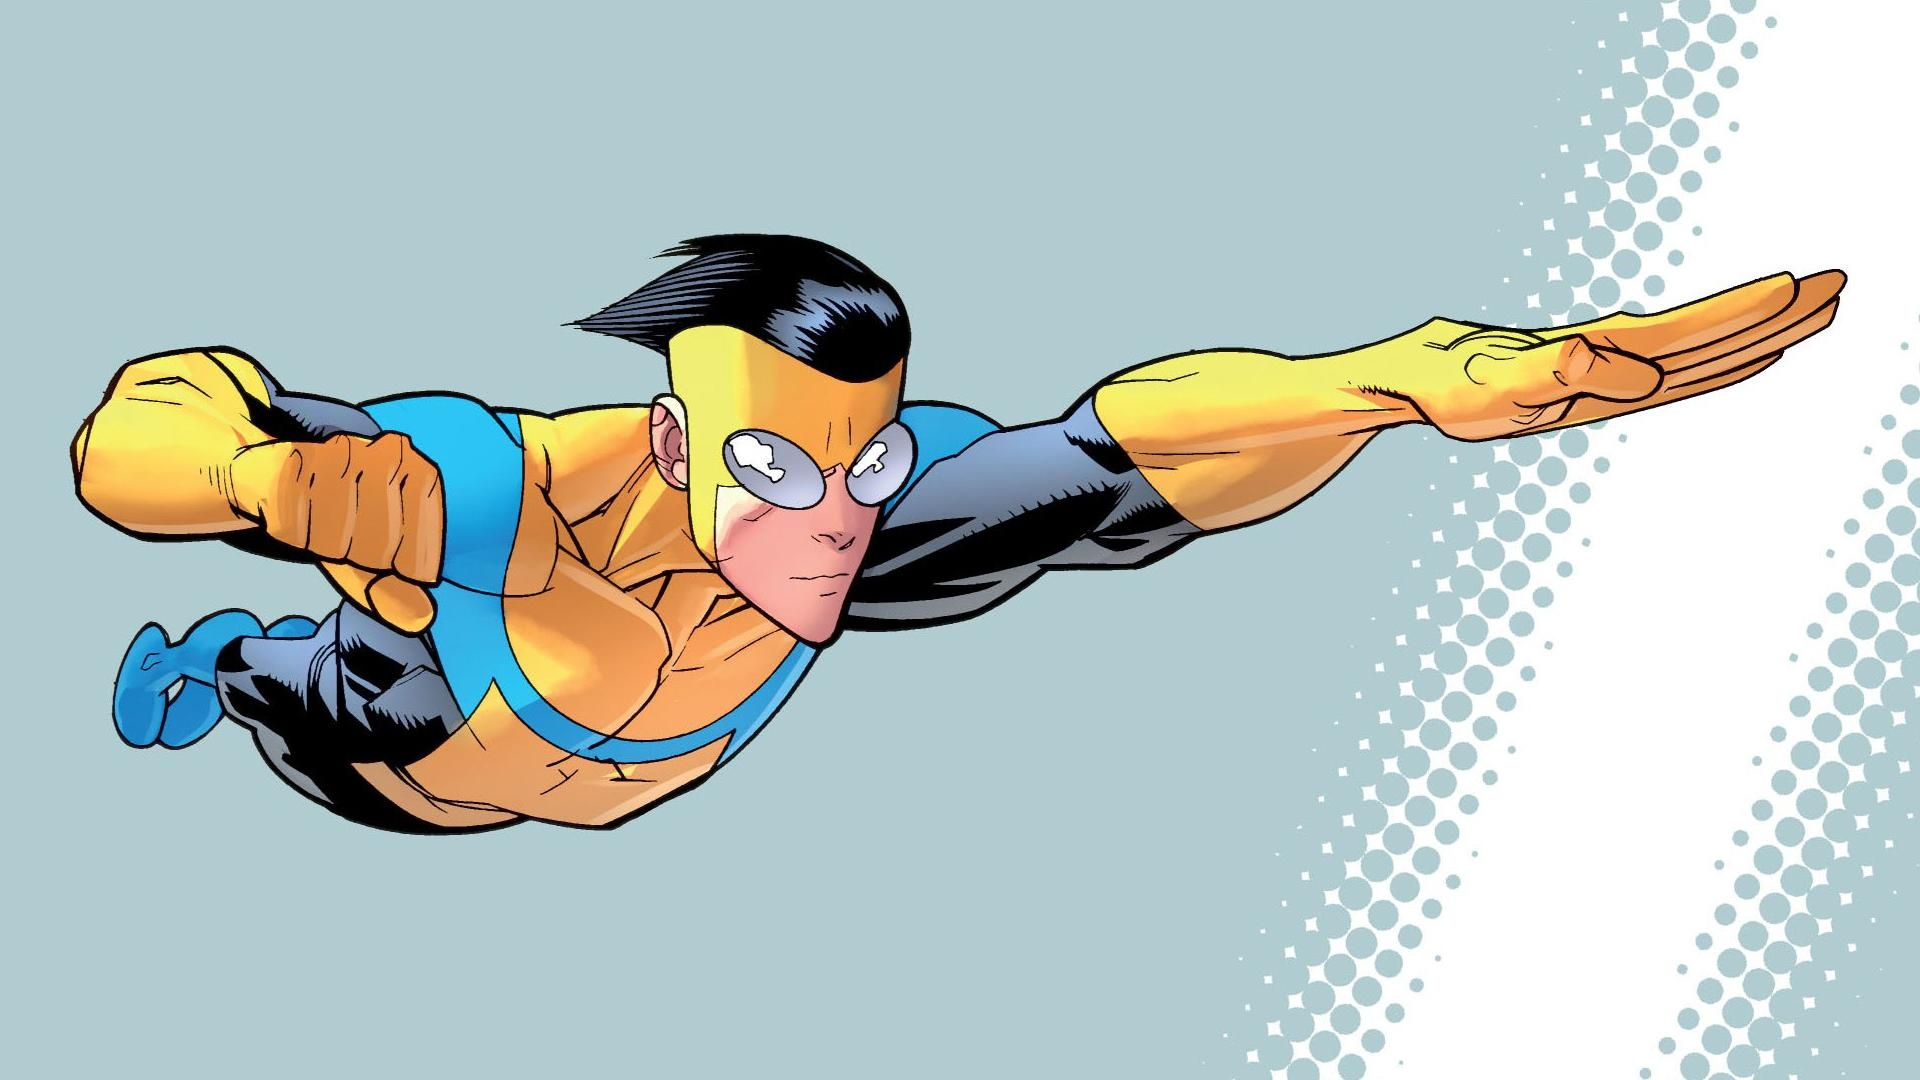 Invincible best background